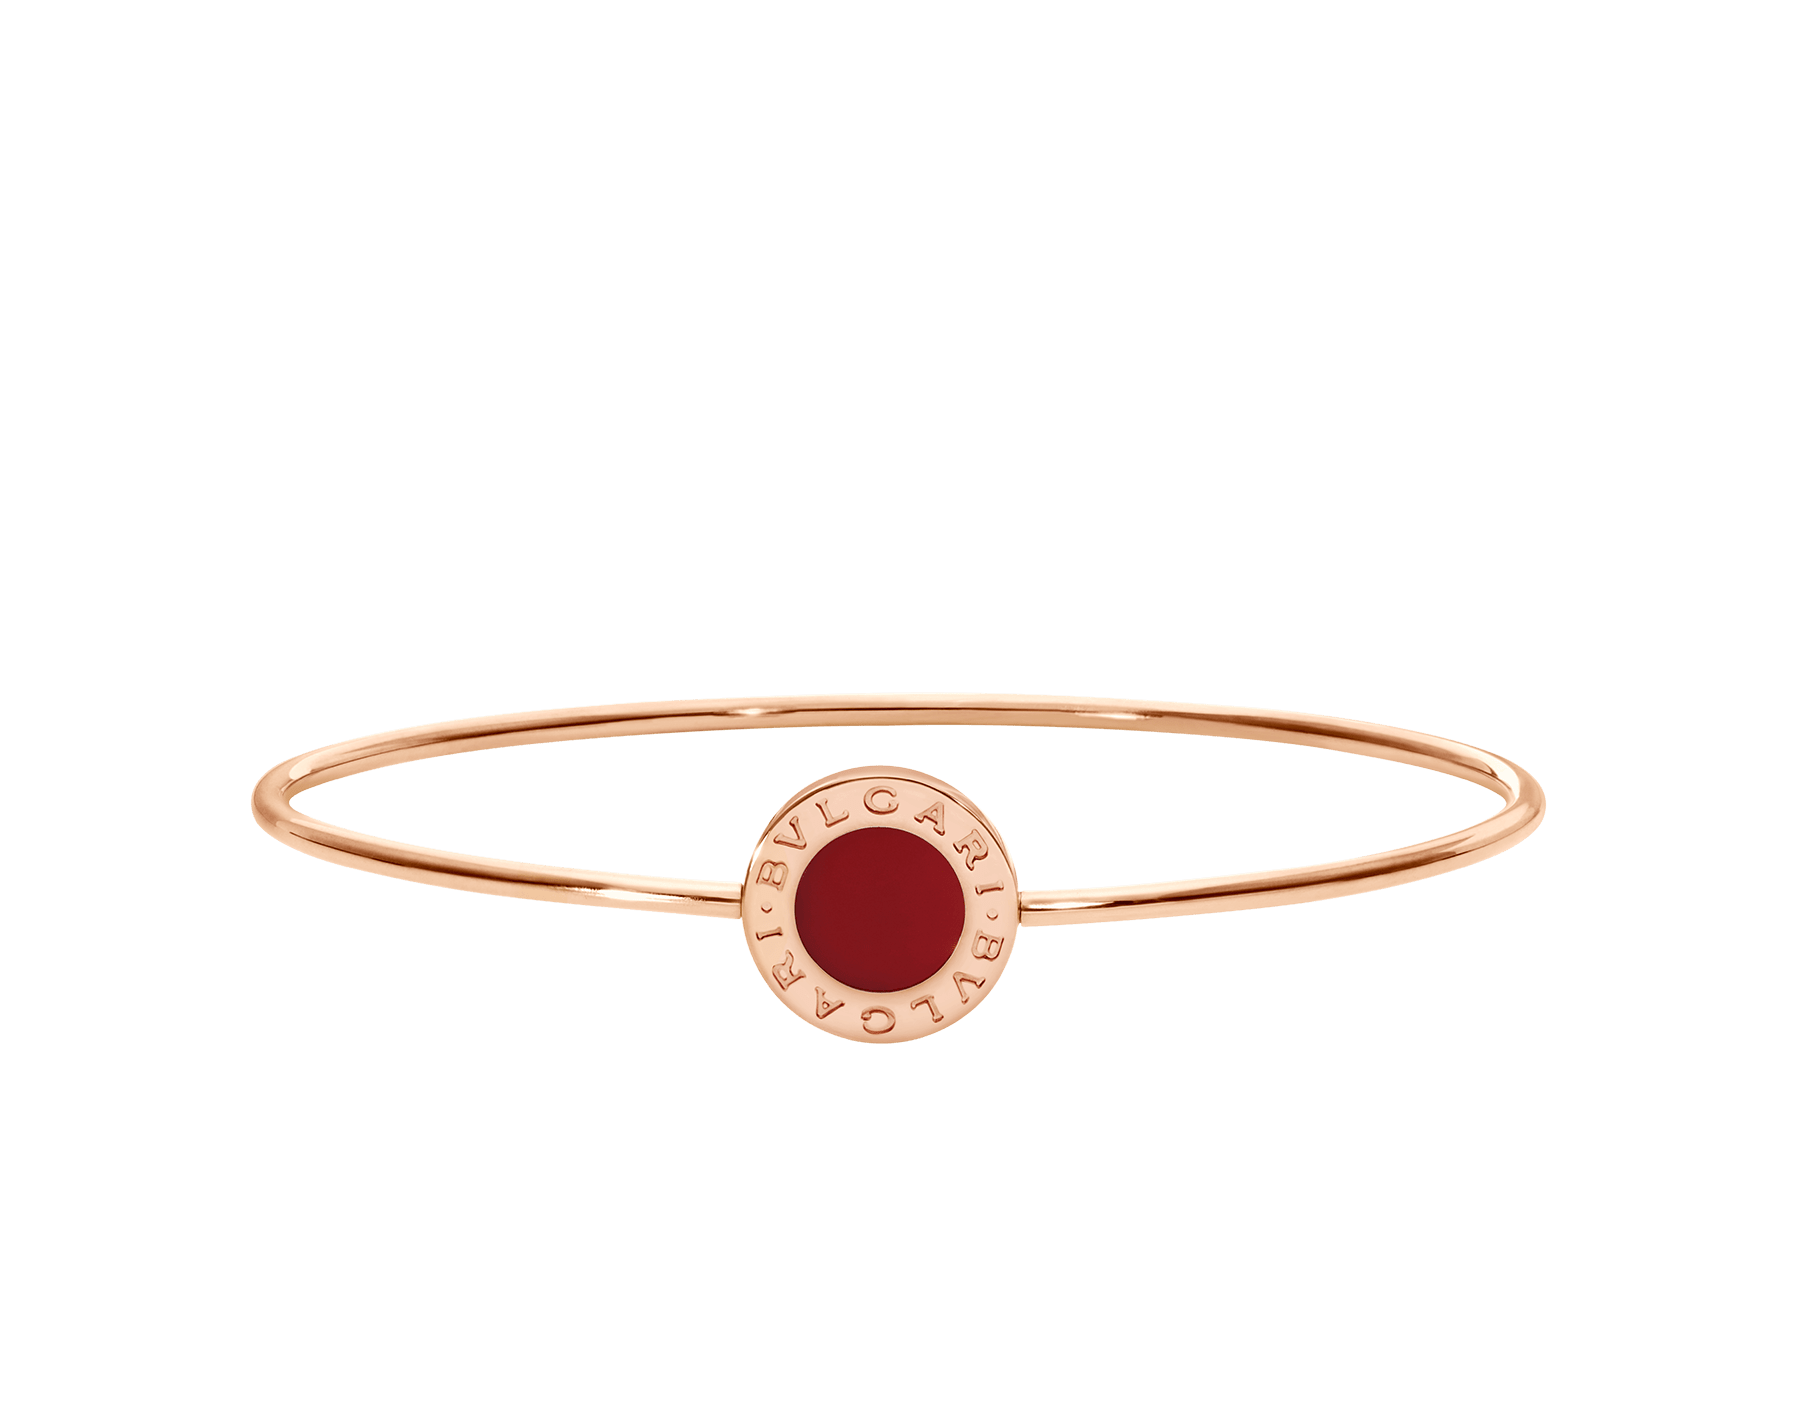 BVLGARI BVLGARI 18 kt rose gold bracelet set with carnelian element BR858697 image 2